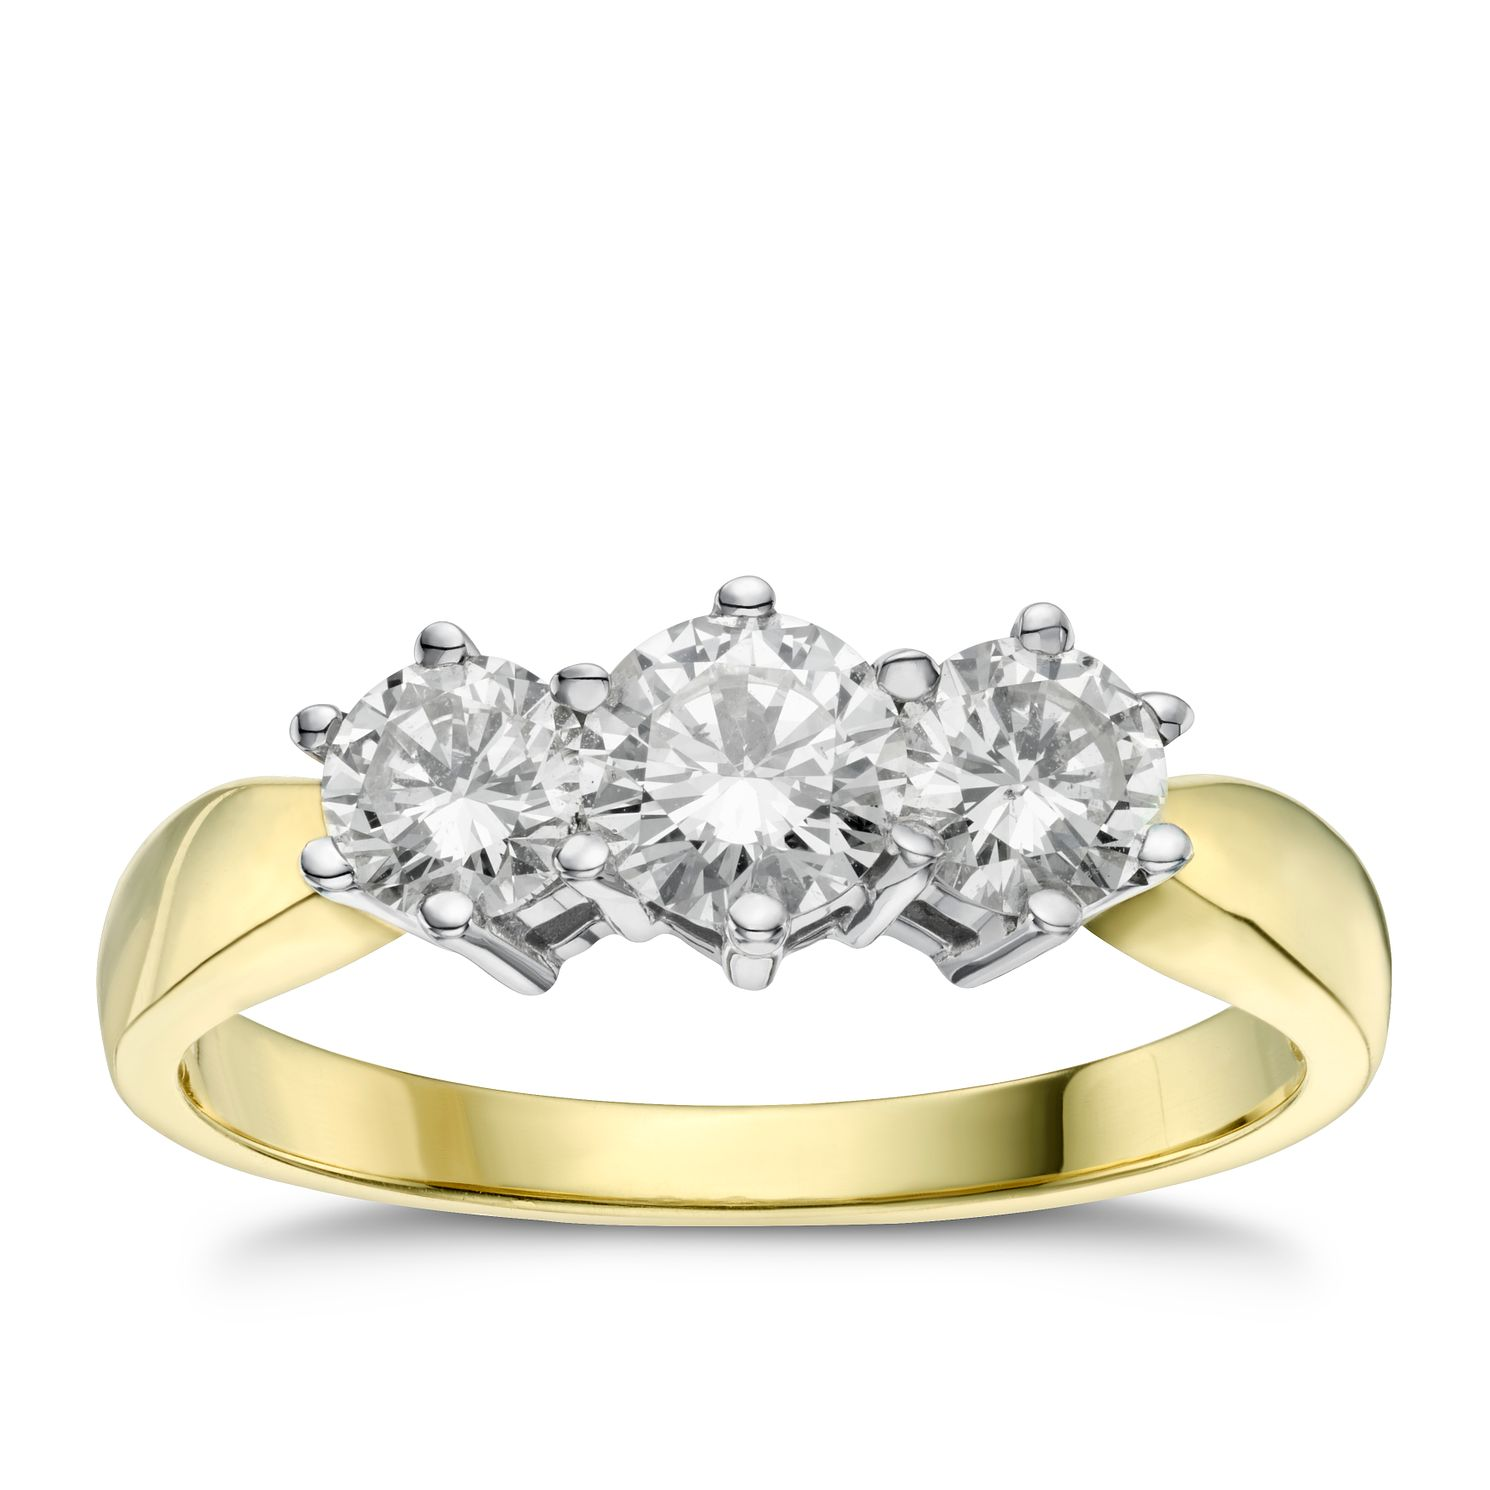 18ct Gold 1ct Total Diamond Three Stone Ring - Product number 4213408